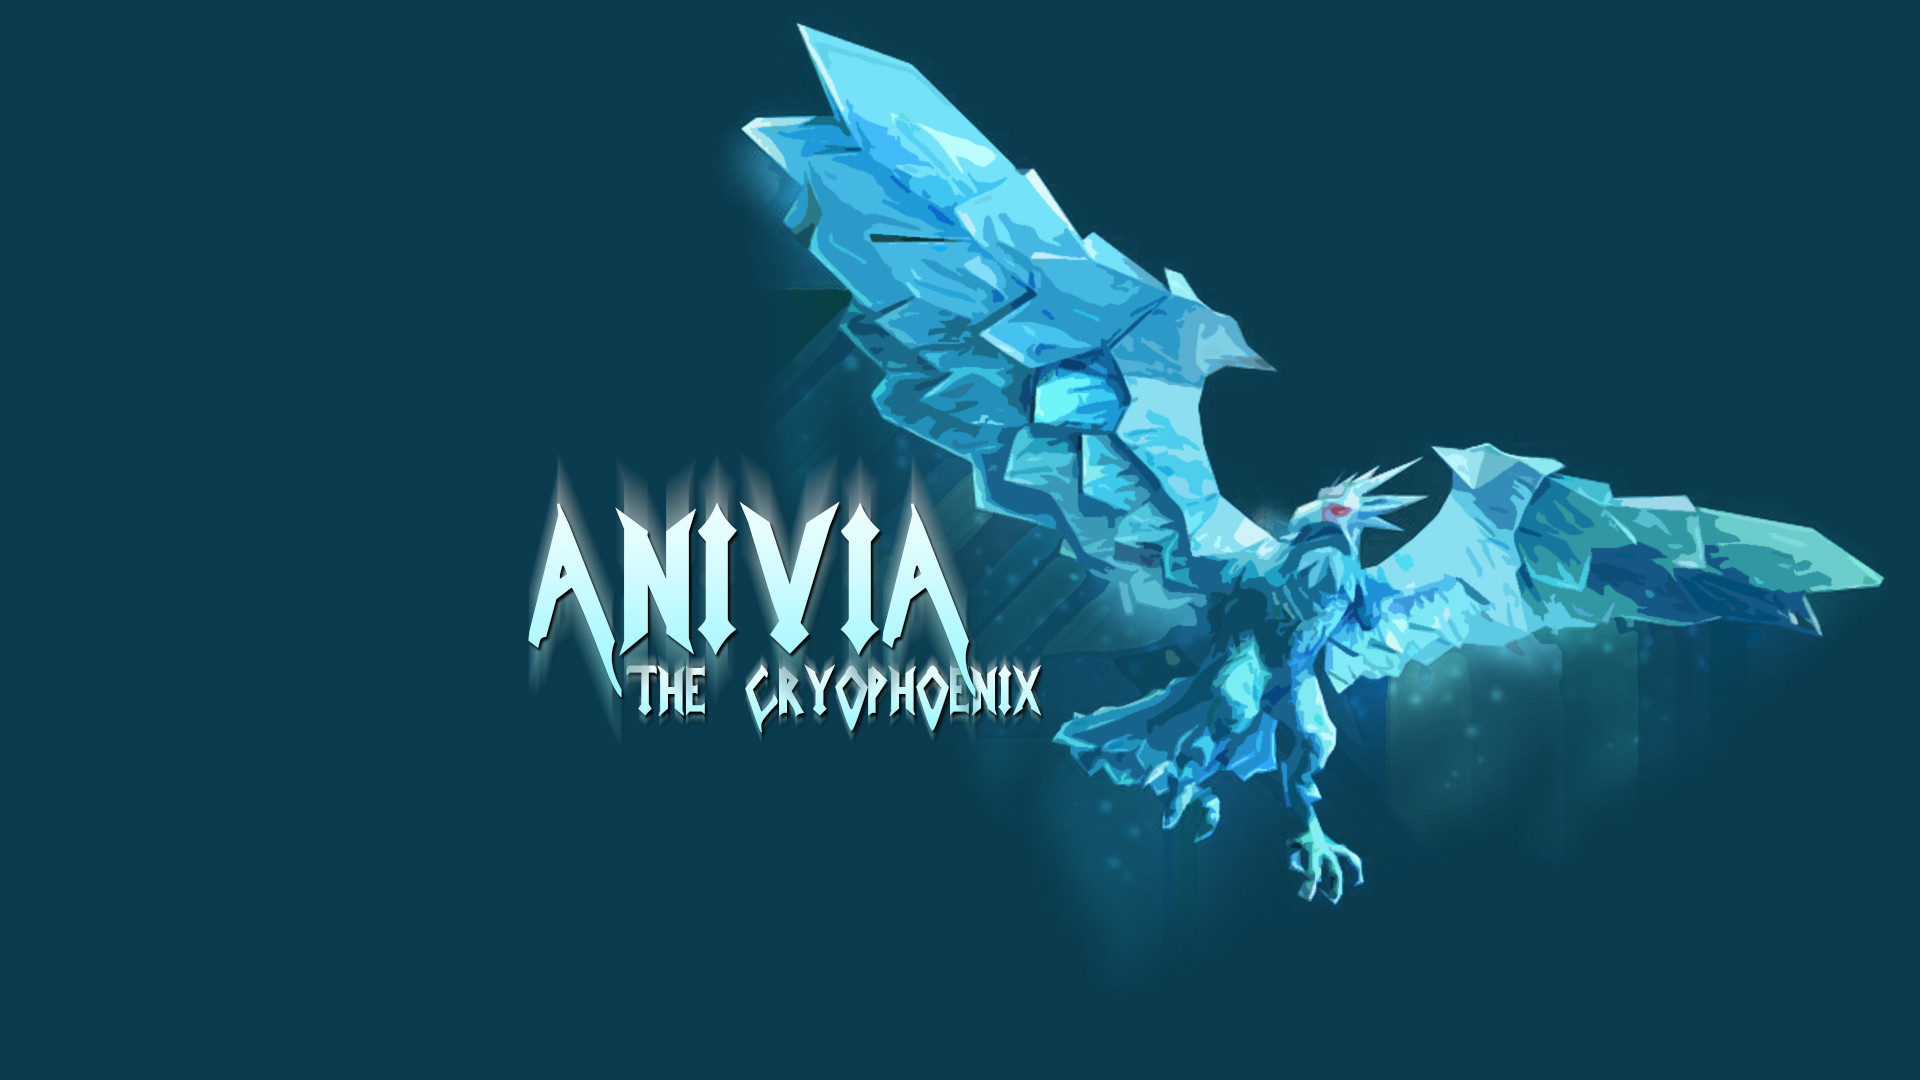 The Cryophoenix Anivia wallpaper